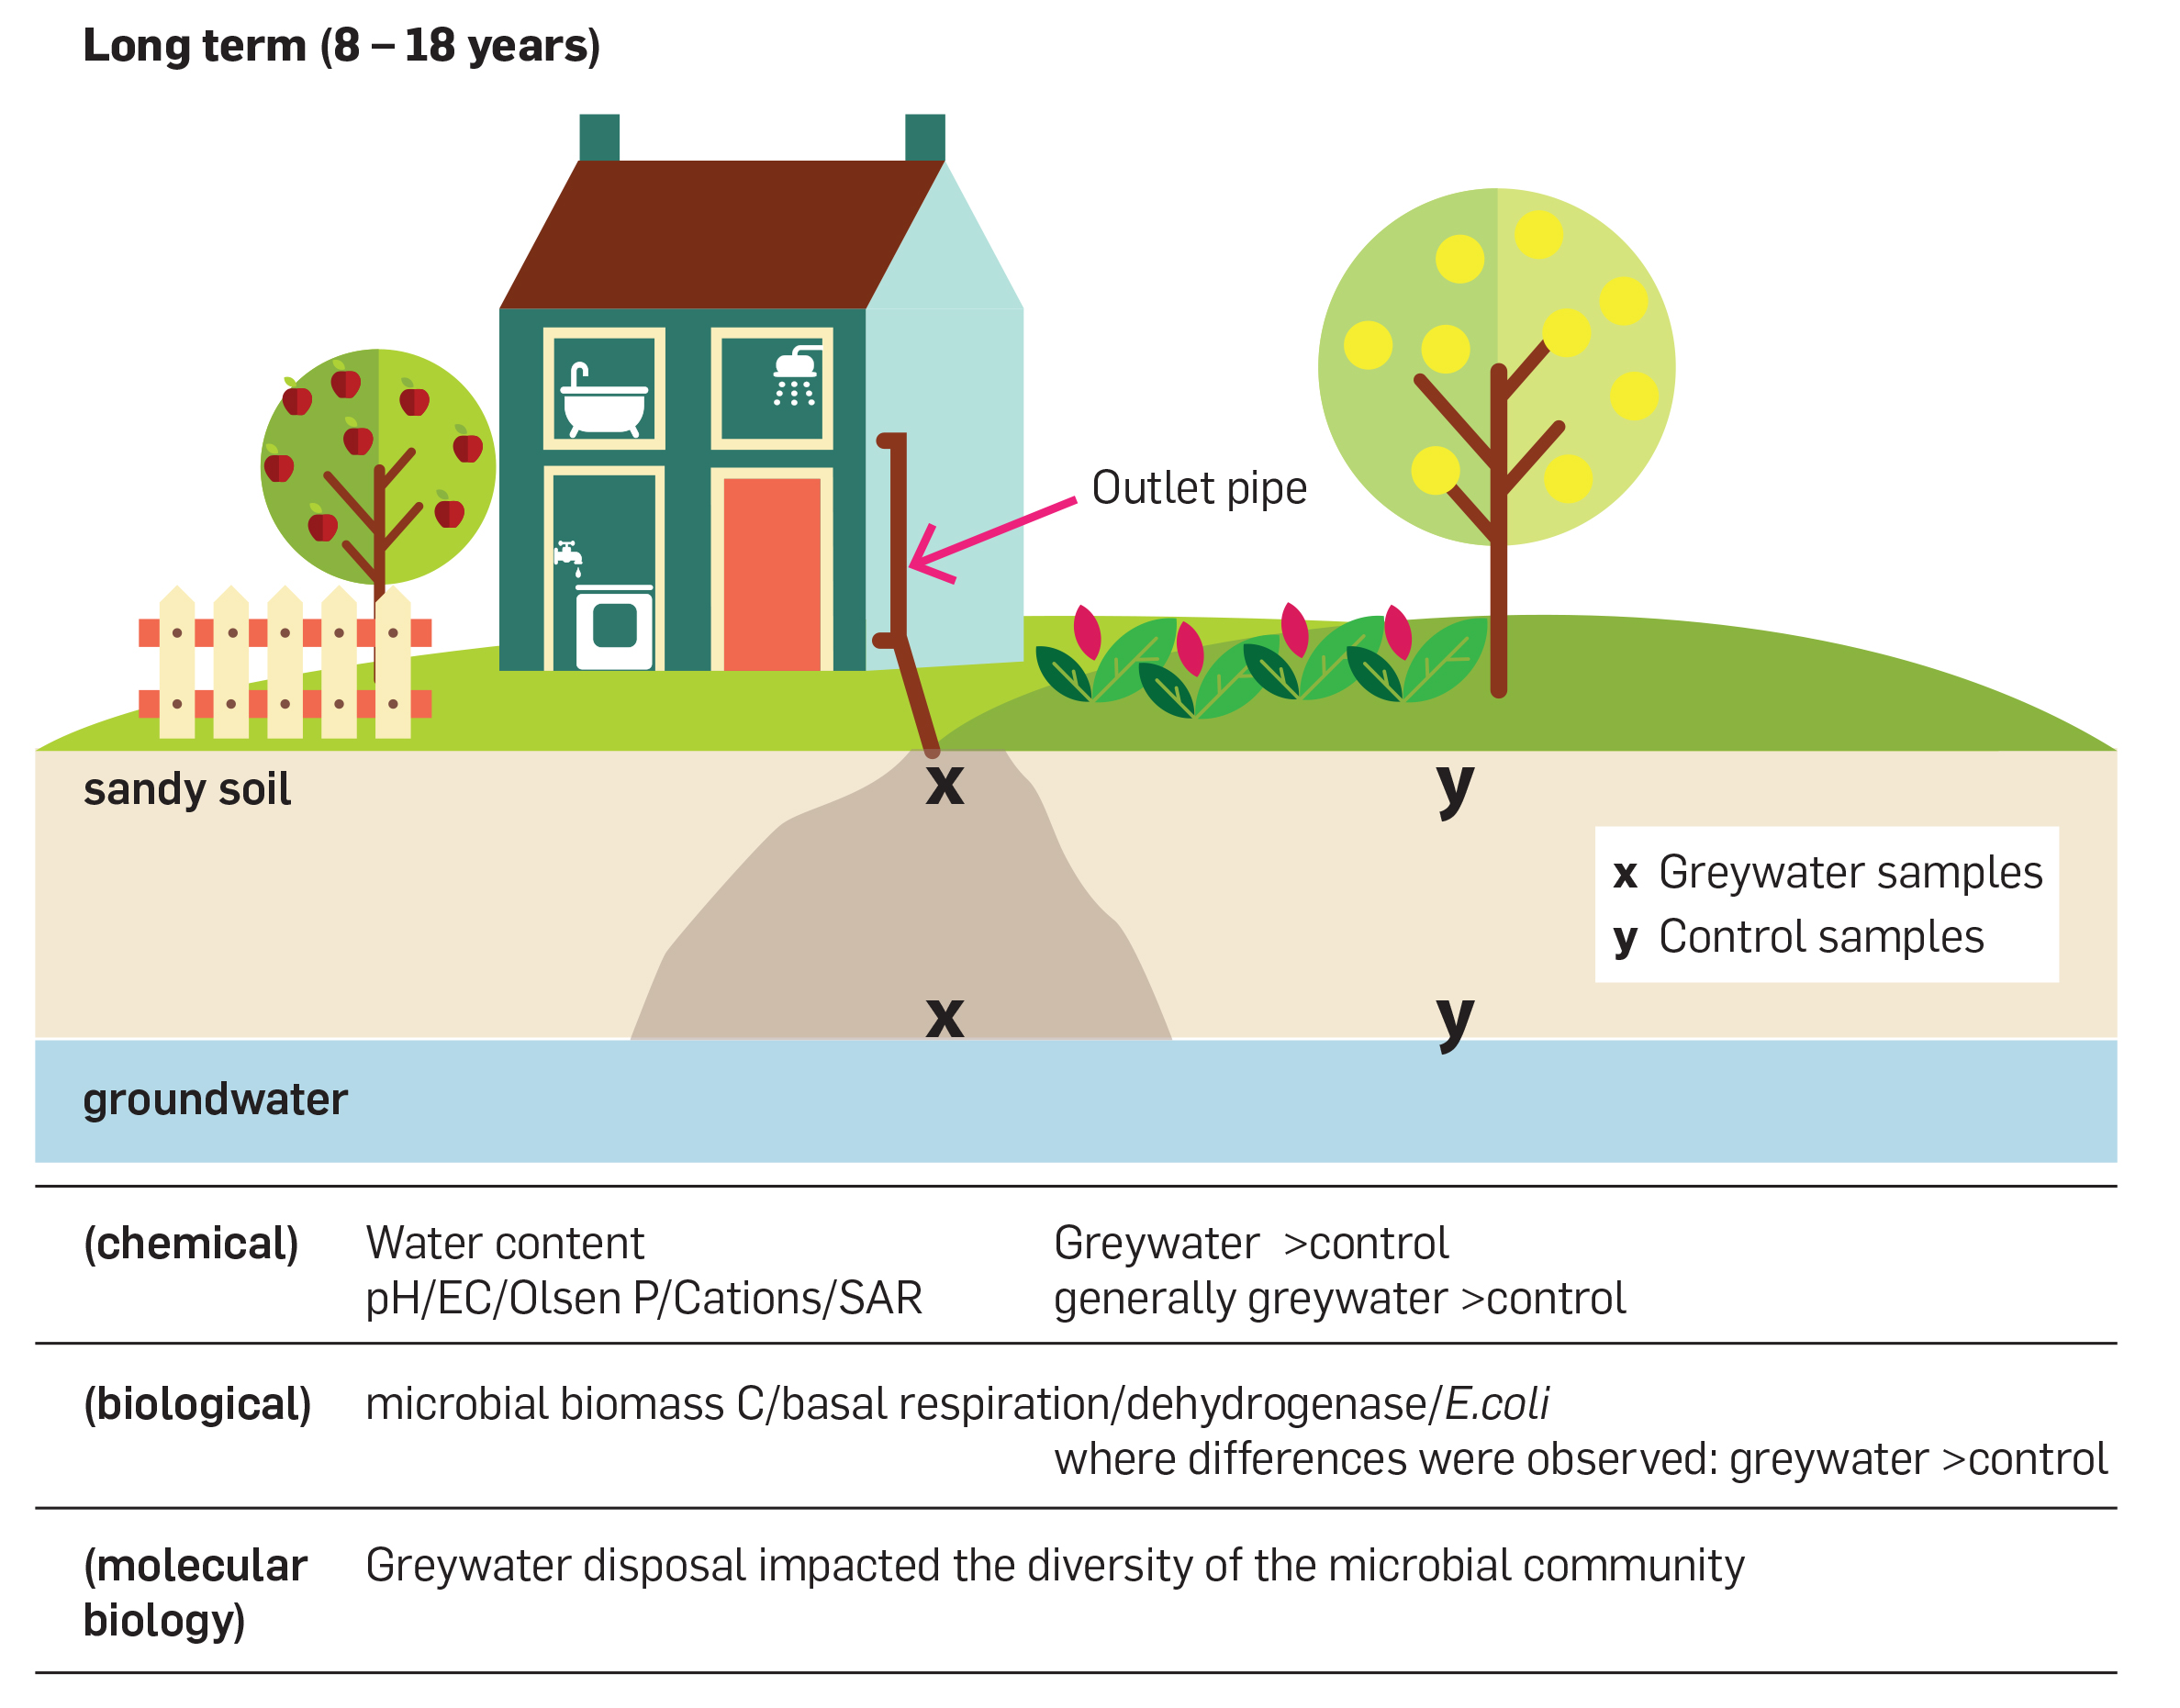 Long term unregulated greywater disposal